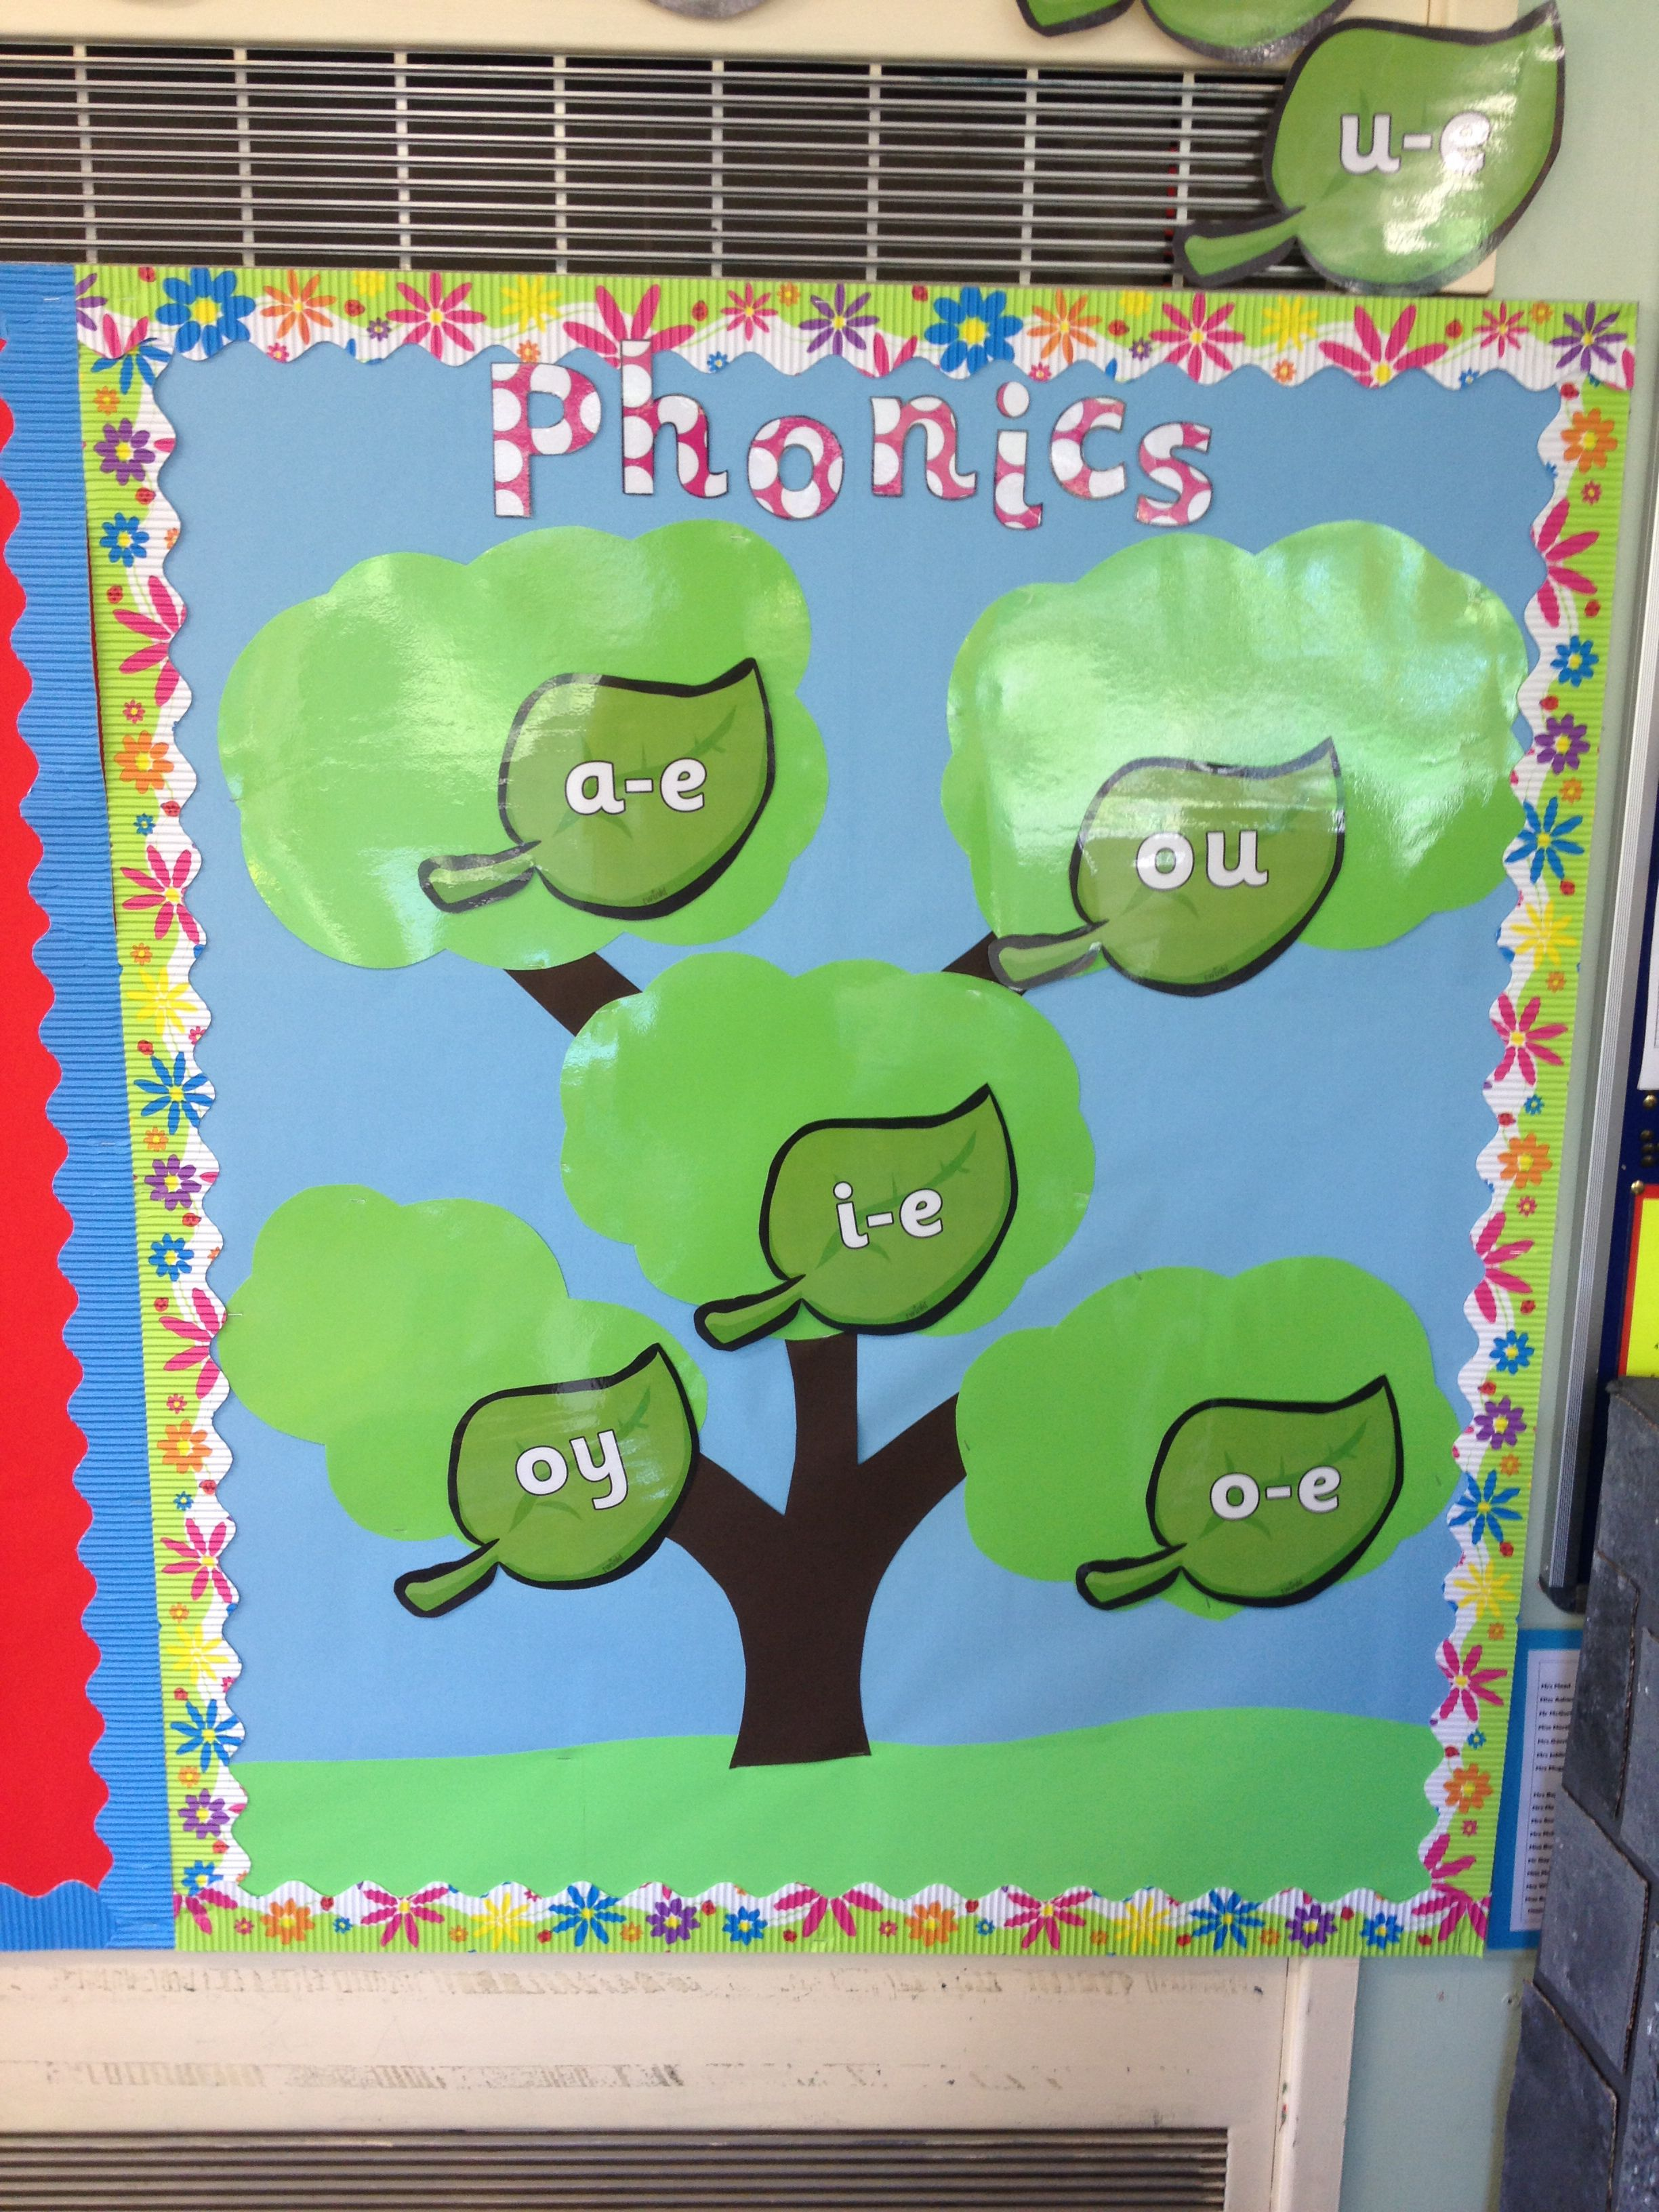 New phonics display! Phase 5 sounds! Going to as words as we go and ...